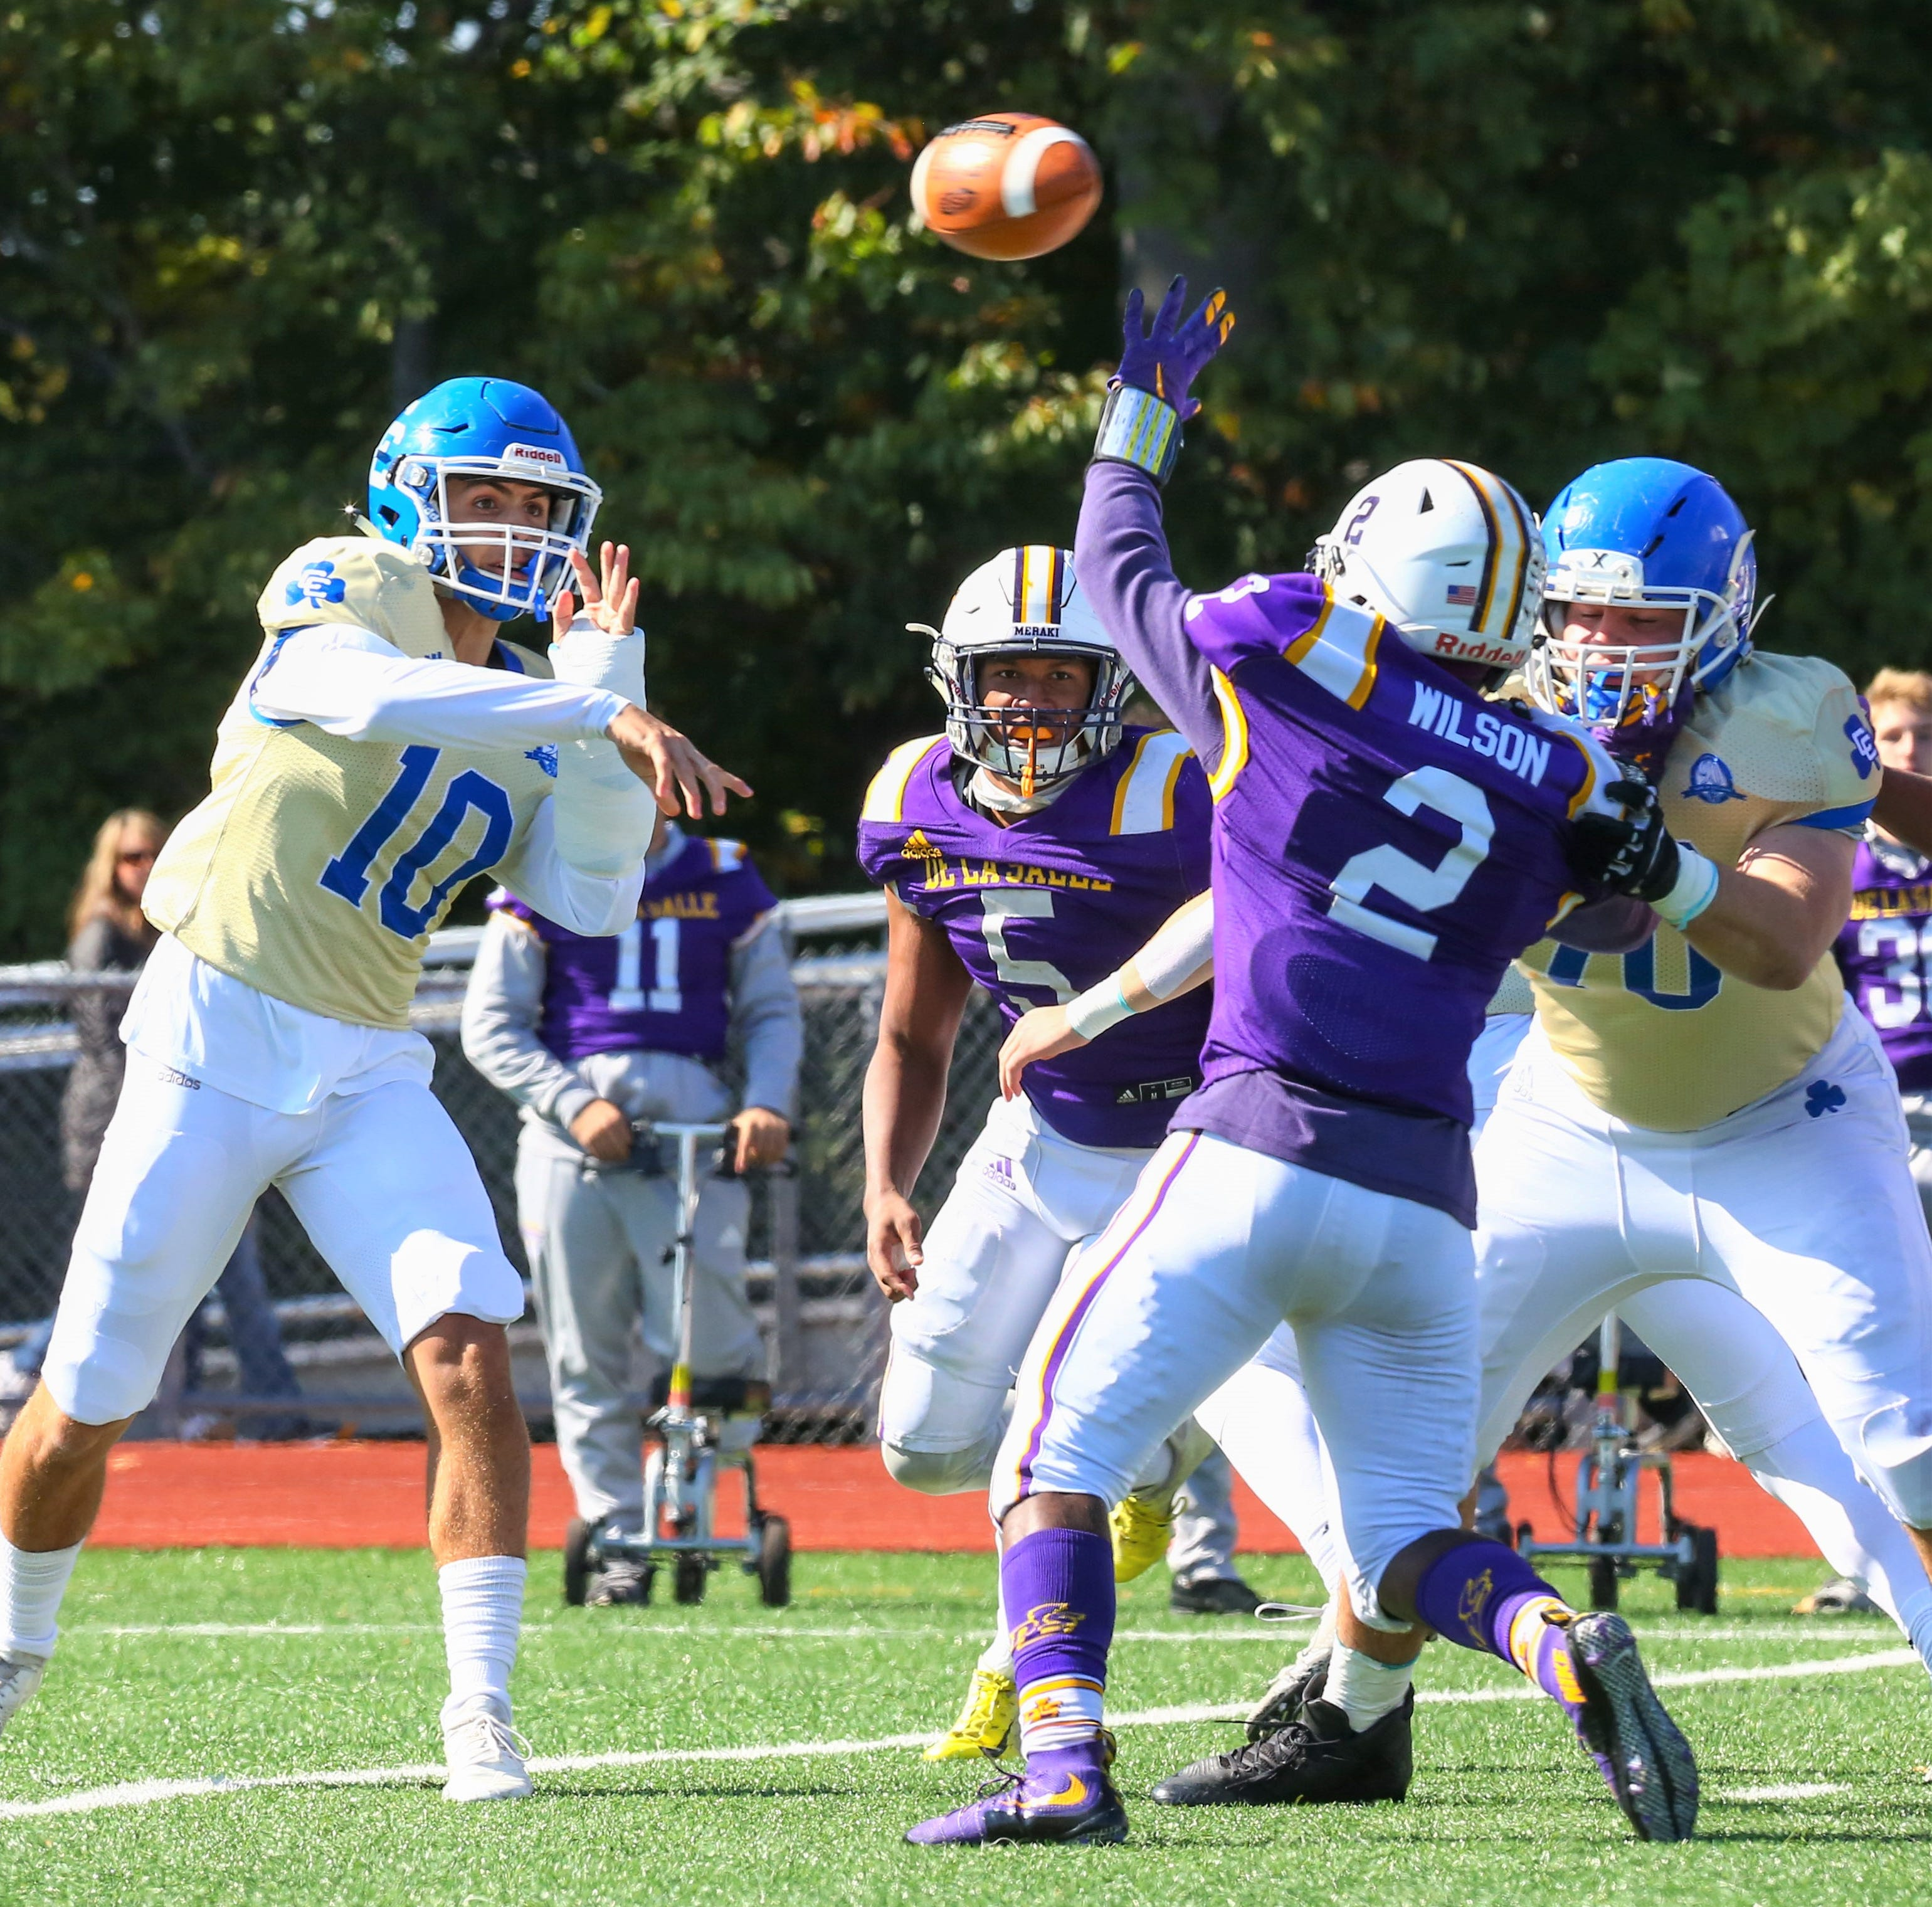 Boys Bowl: Detroit Catholic Central defense stymies DeLaSalle, 10-7